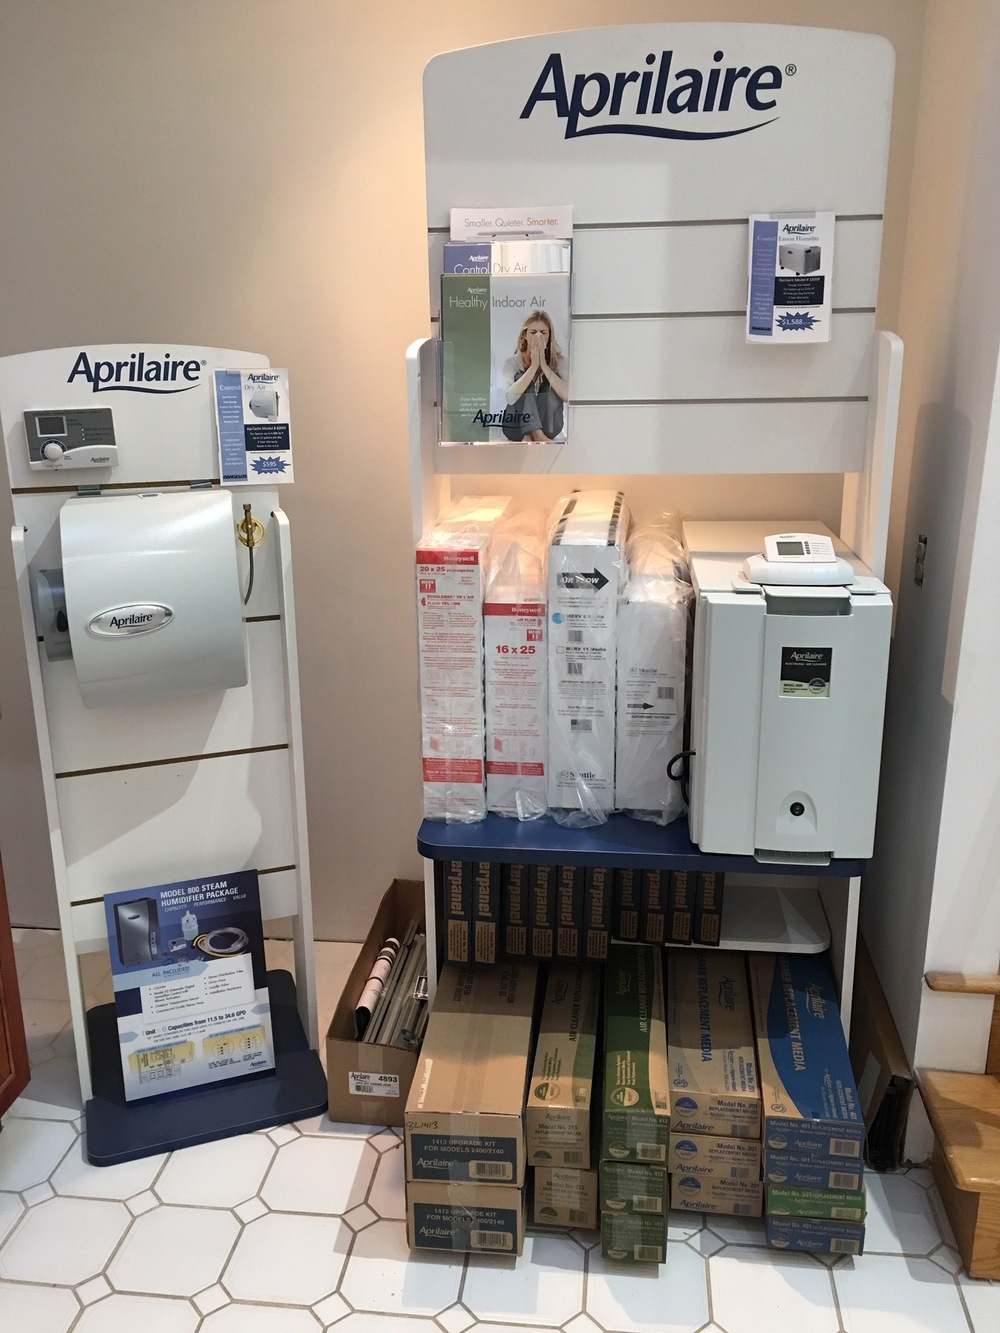 Aprilaire product display at D'Angelo's Plumbing & Heating